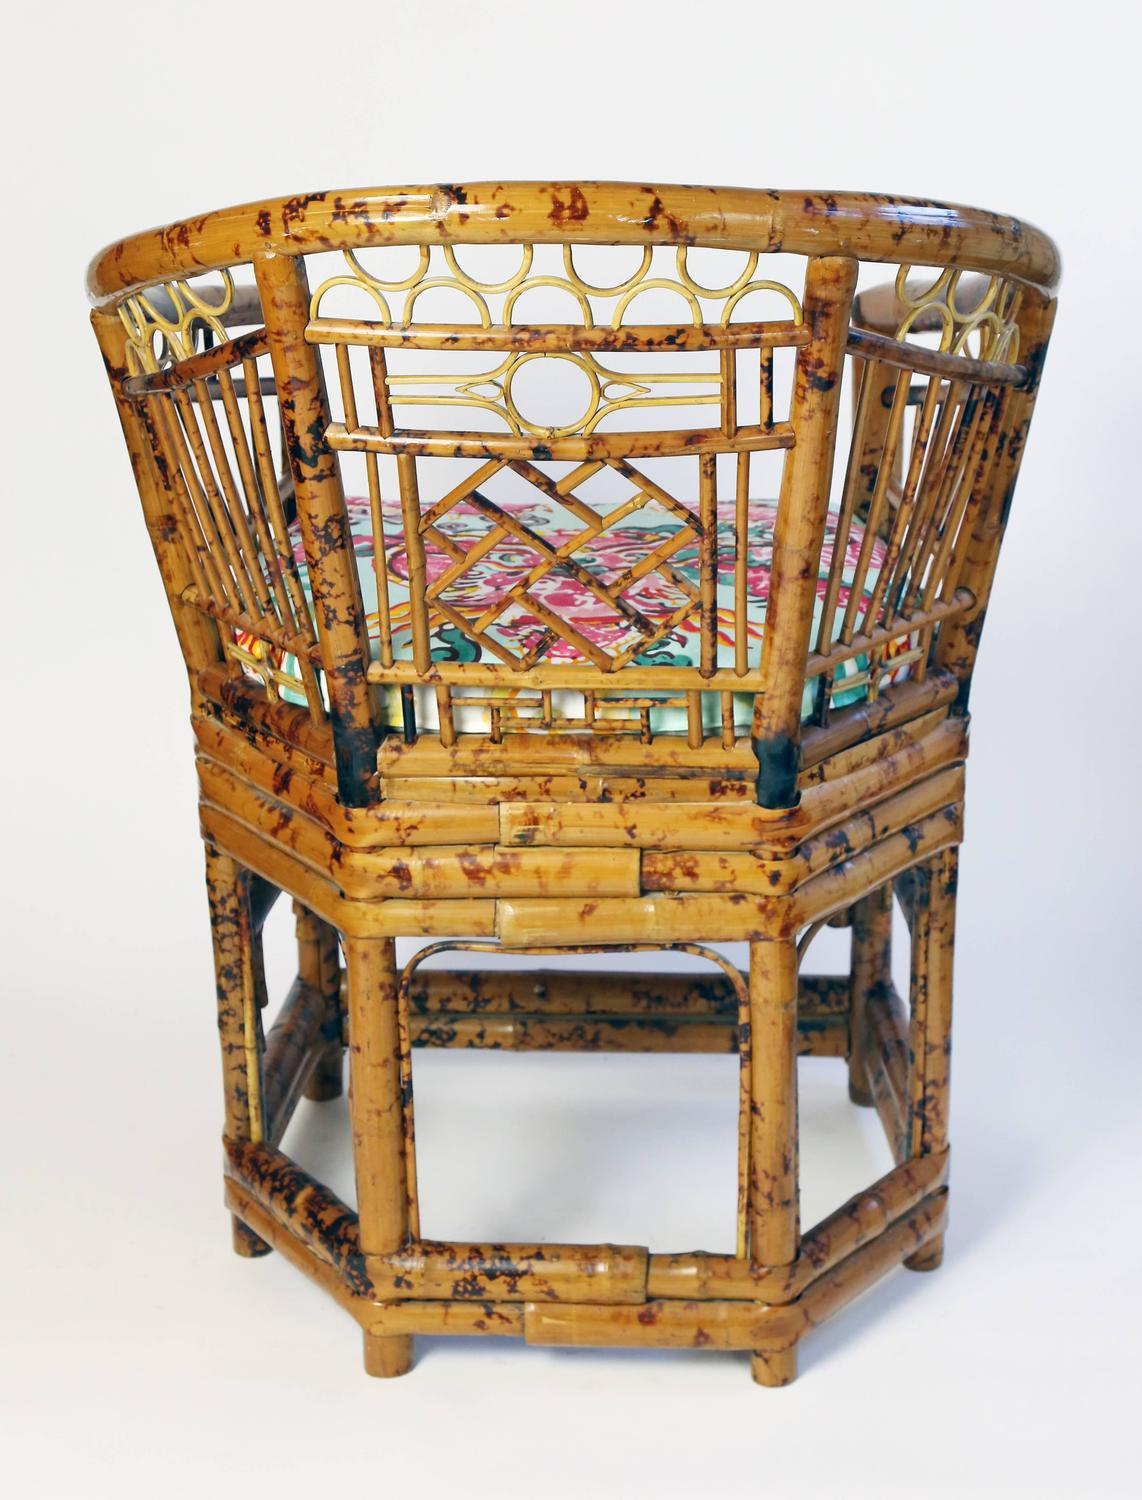 bamboo chairs for sale bouncy babies over 6 months pair of brighton pavilion chinoiserie style